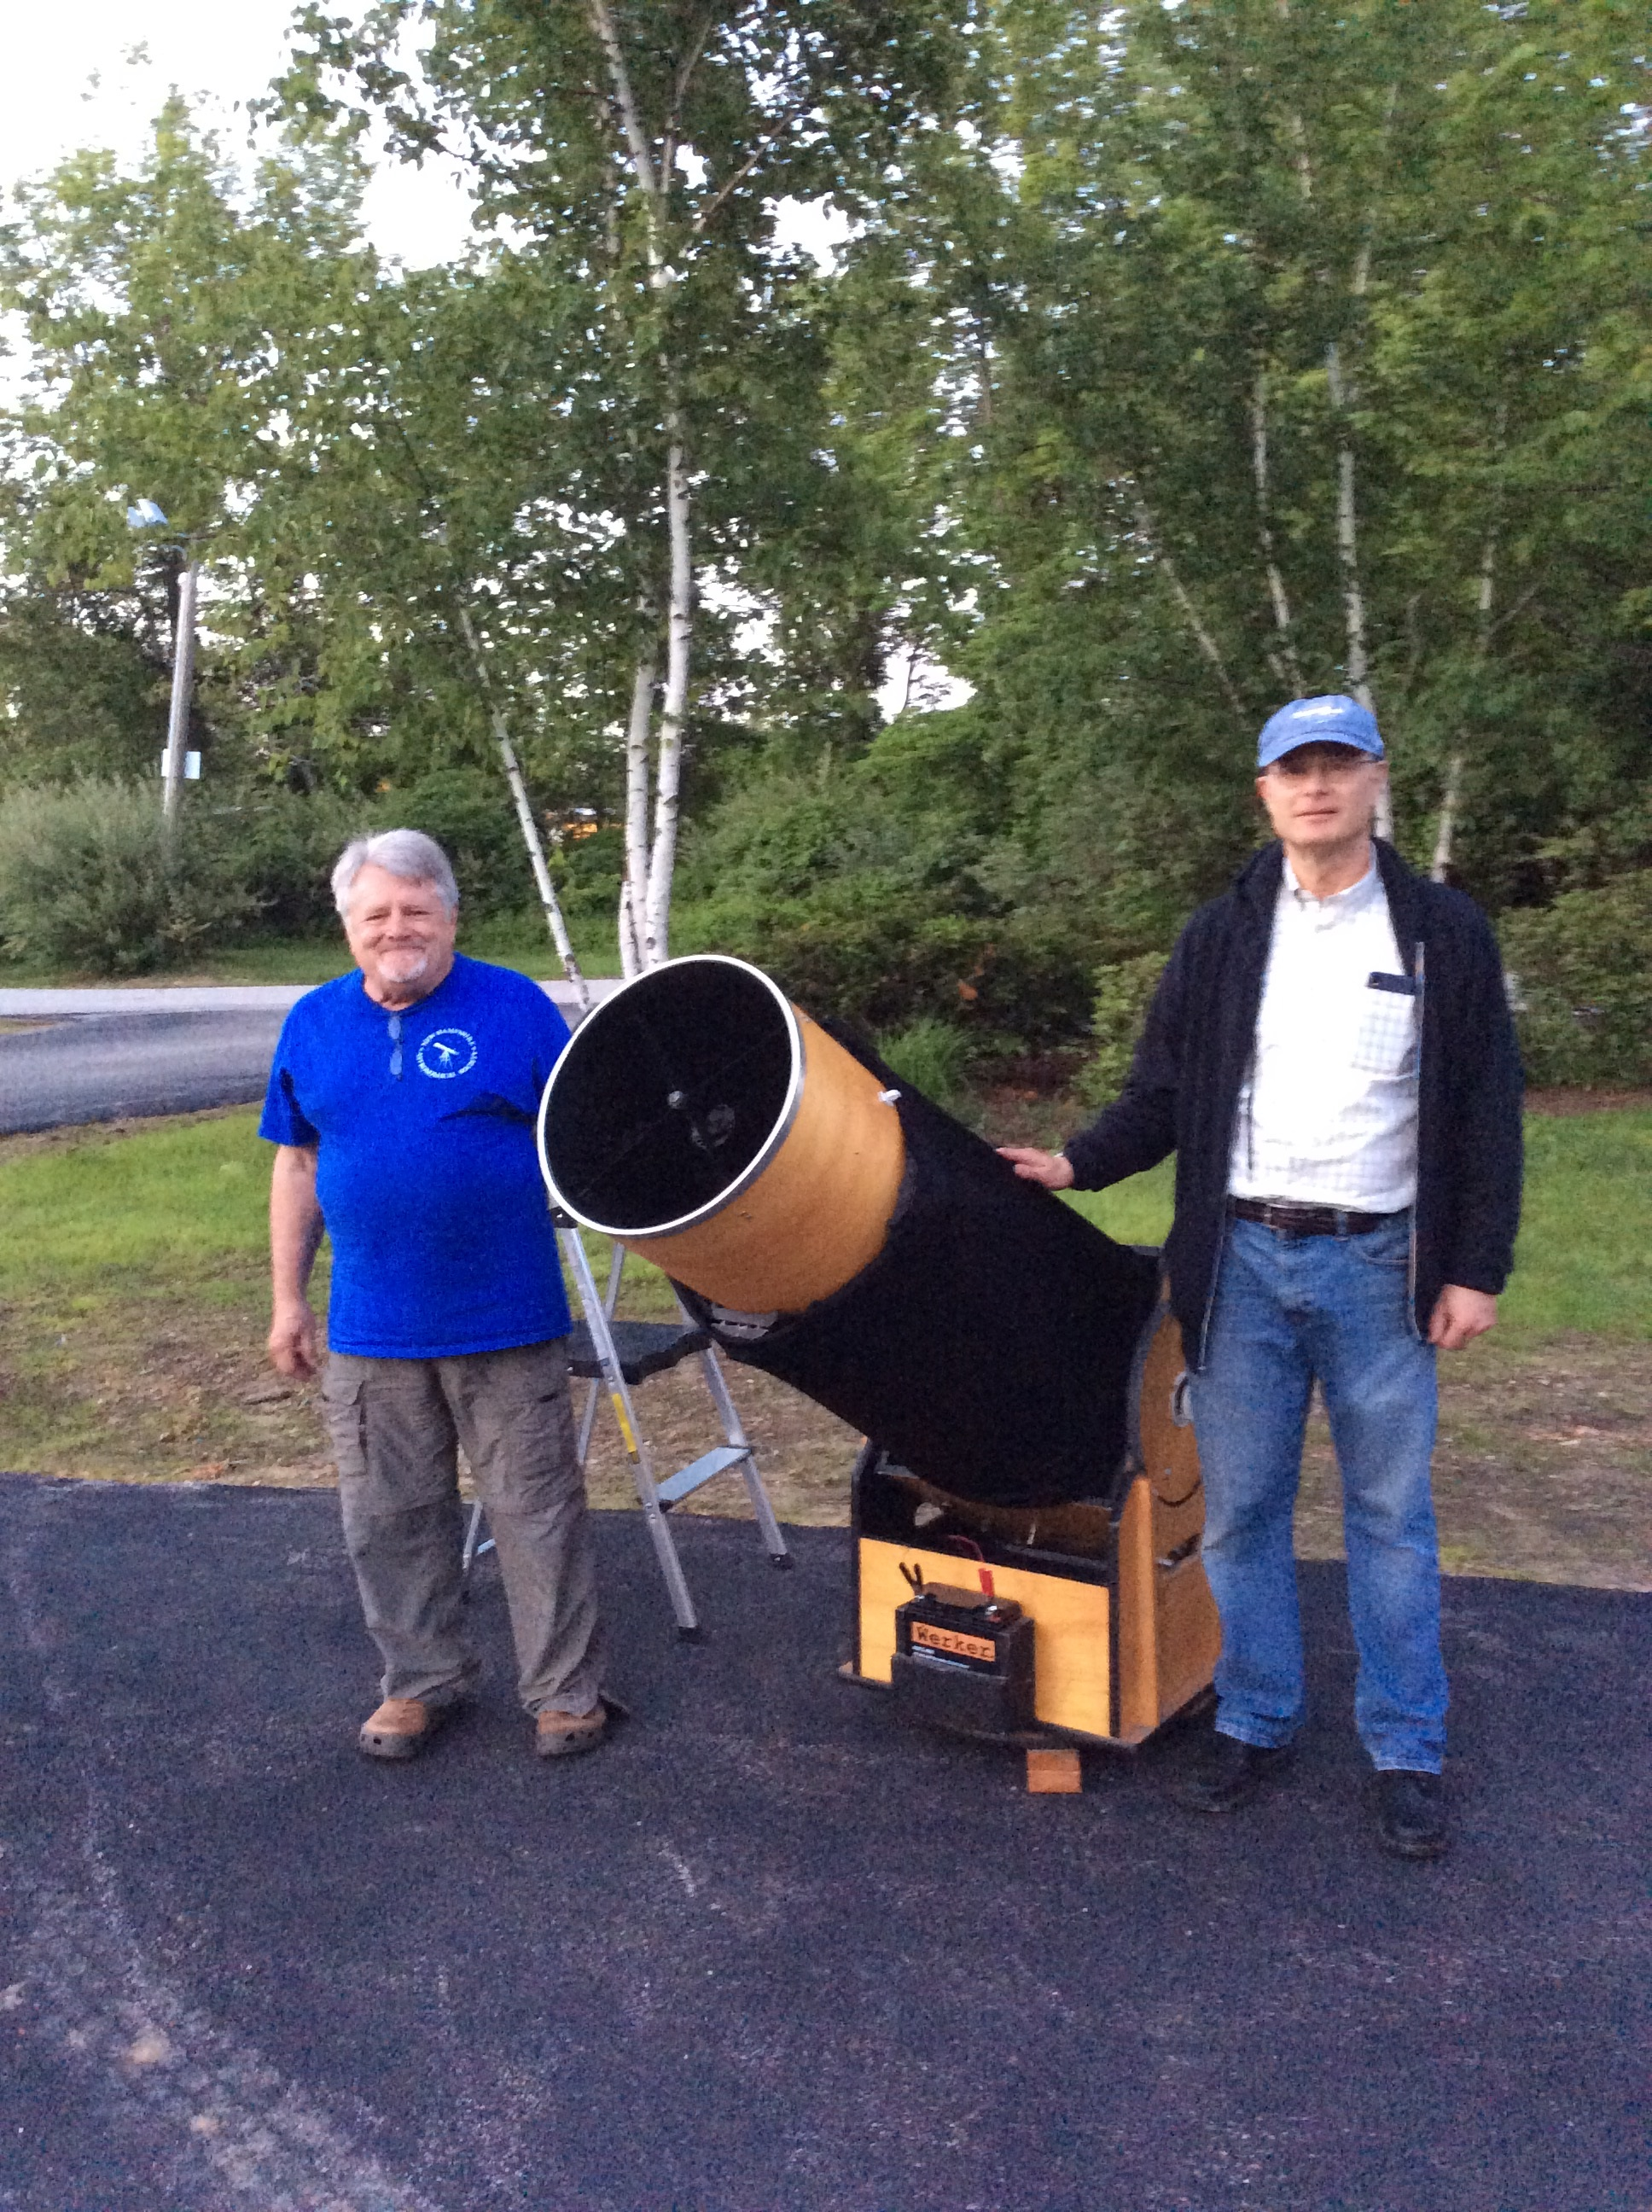 Steve Rand and Andy Jaffe from NH Astronomical Society at the Skywatch